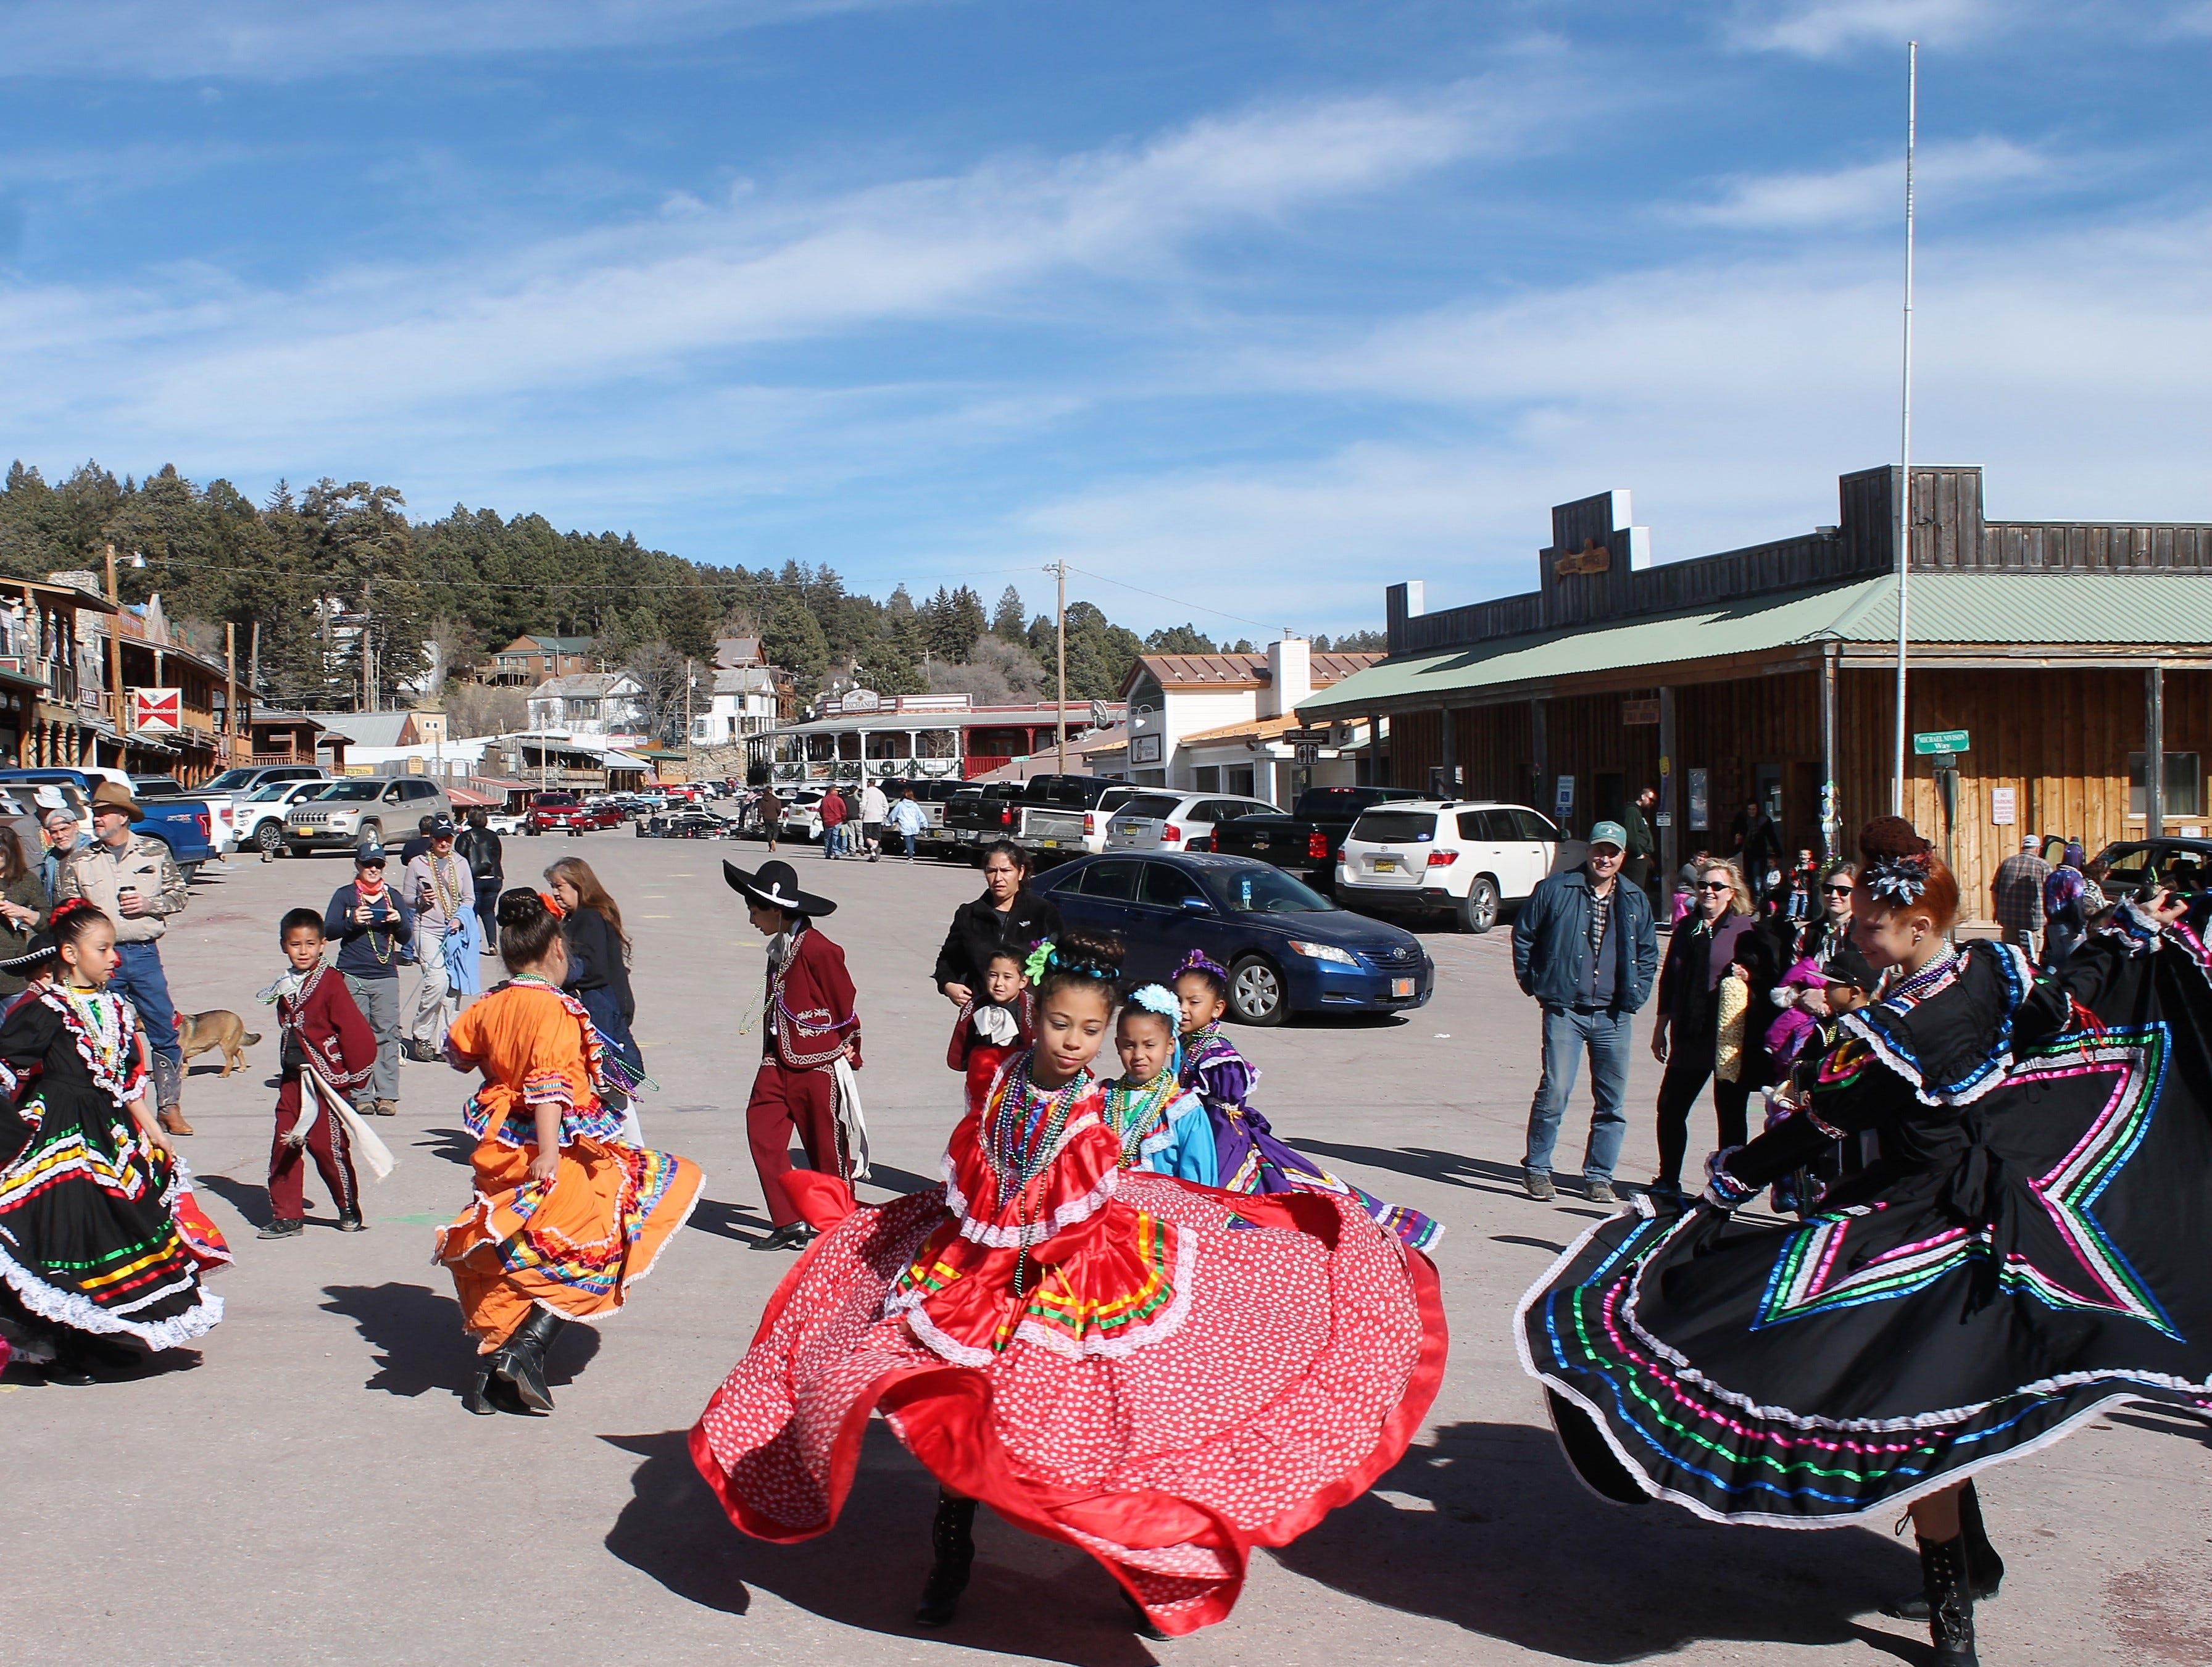 Members of Baile Folklorico dance on Burro Avenue during the Cloudcroft Chamber of Commerce's Mardi Gras in the Clouds Saturday.